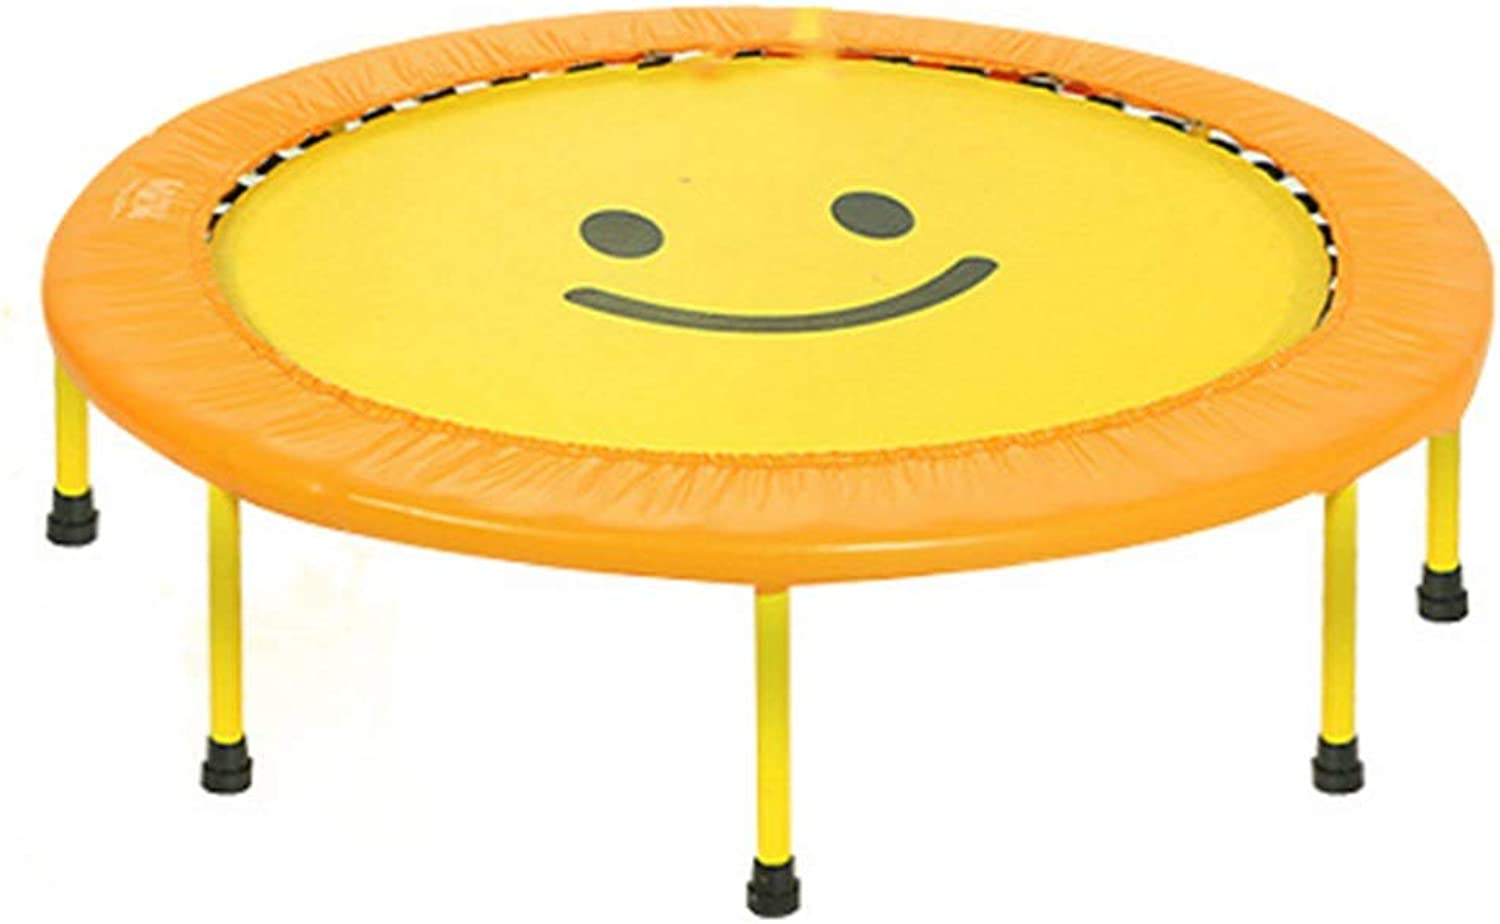 40-Inch Indoor Trampoline - Mini Trampoline - Round - Fitness Trampoline - Suitable For Home Use - Load Capacity Up To 150kg